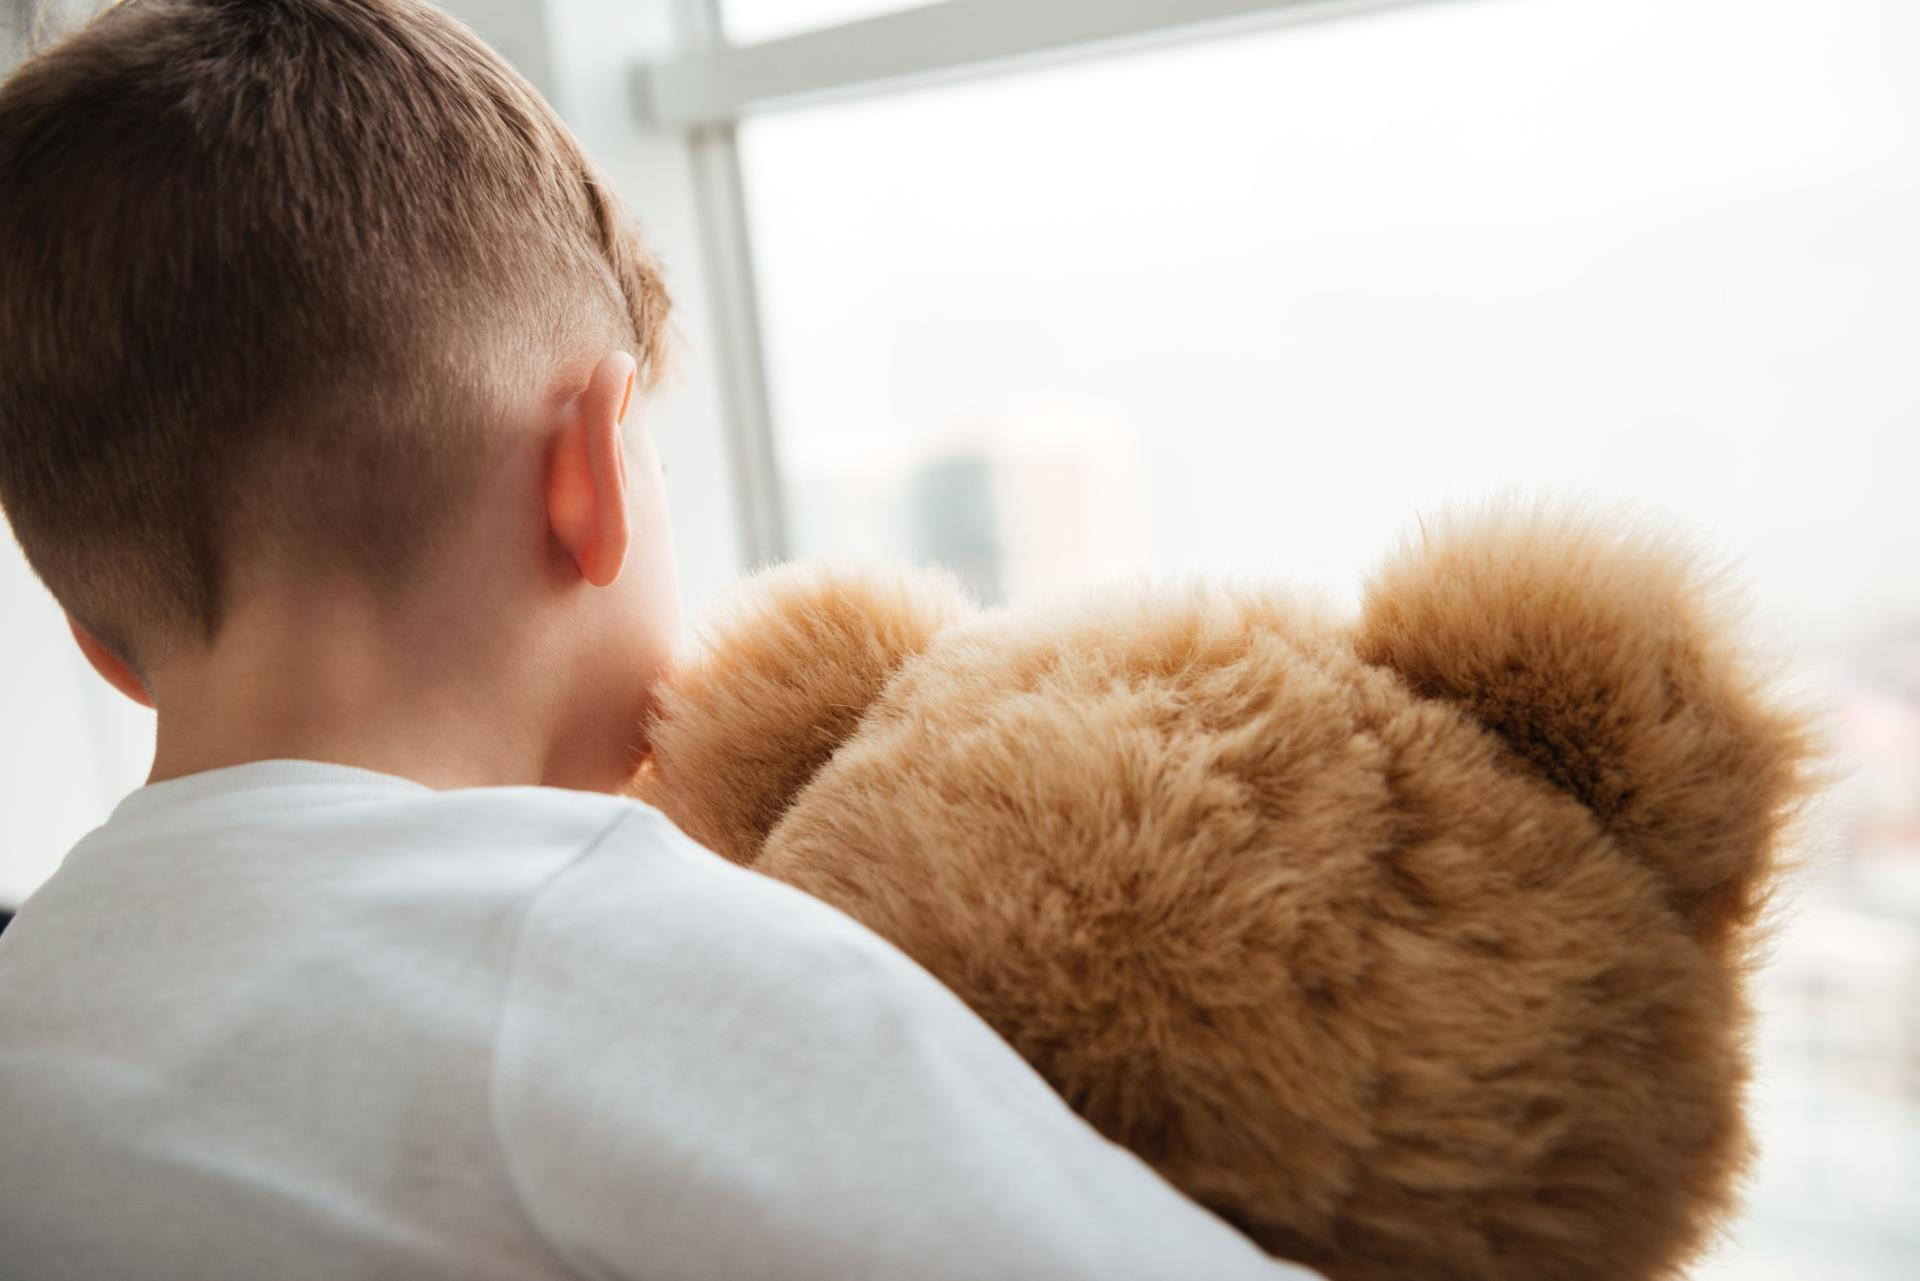 graphicstock-picture-of-alone-little-sad-boy-standing-with-teddy-bear-ne...